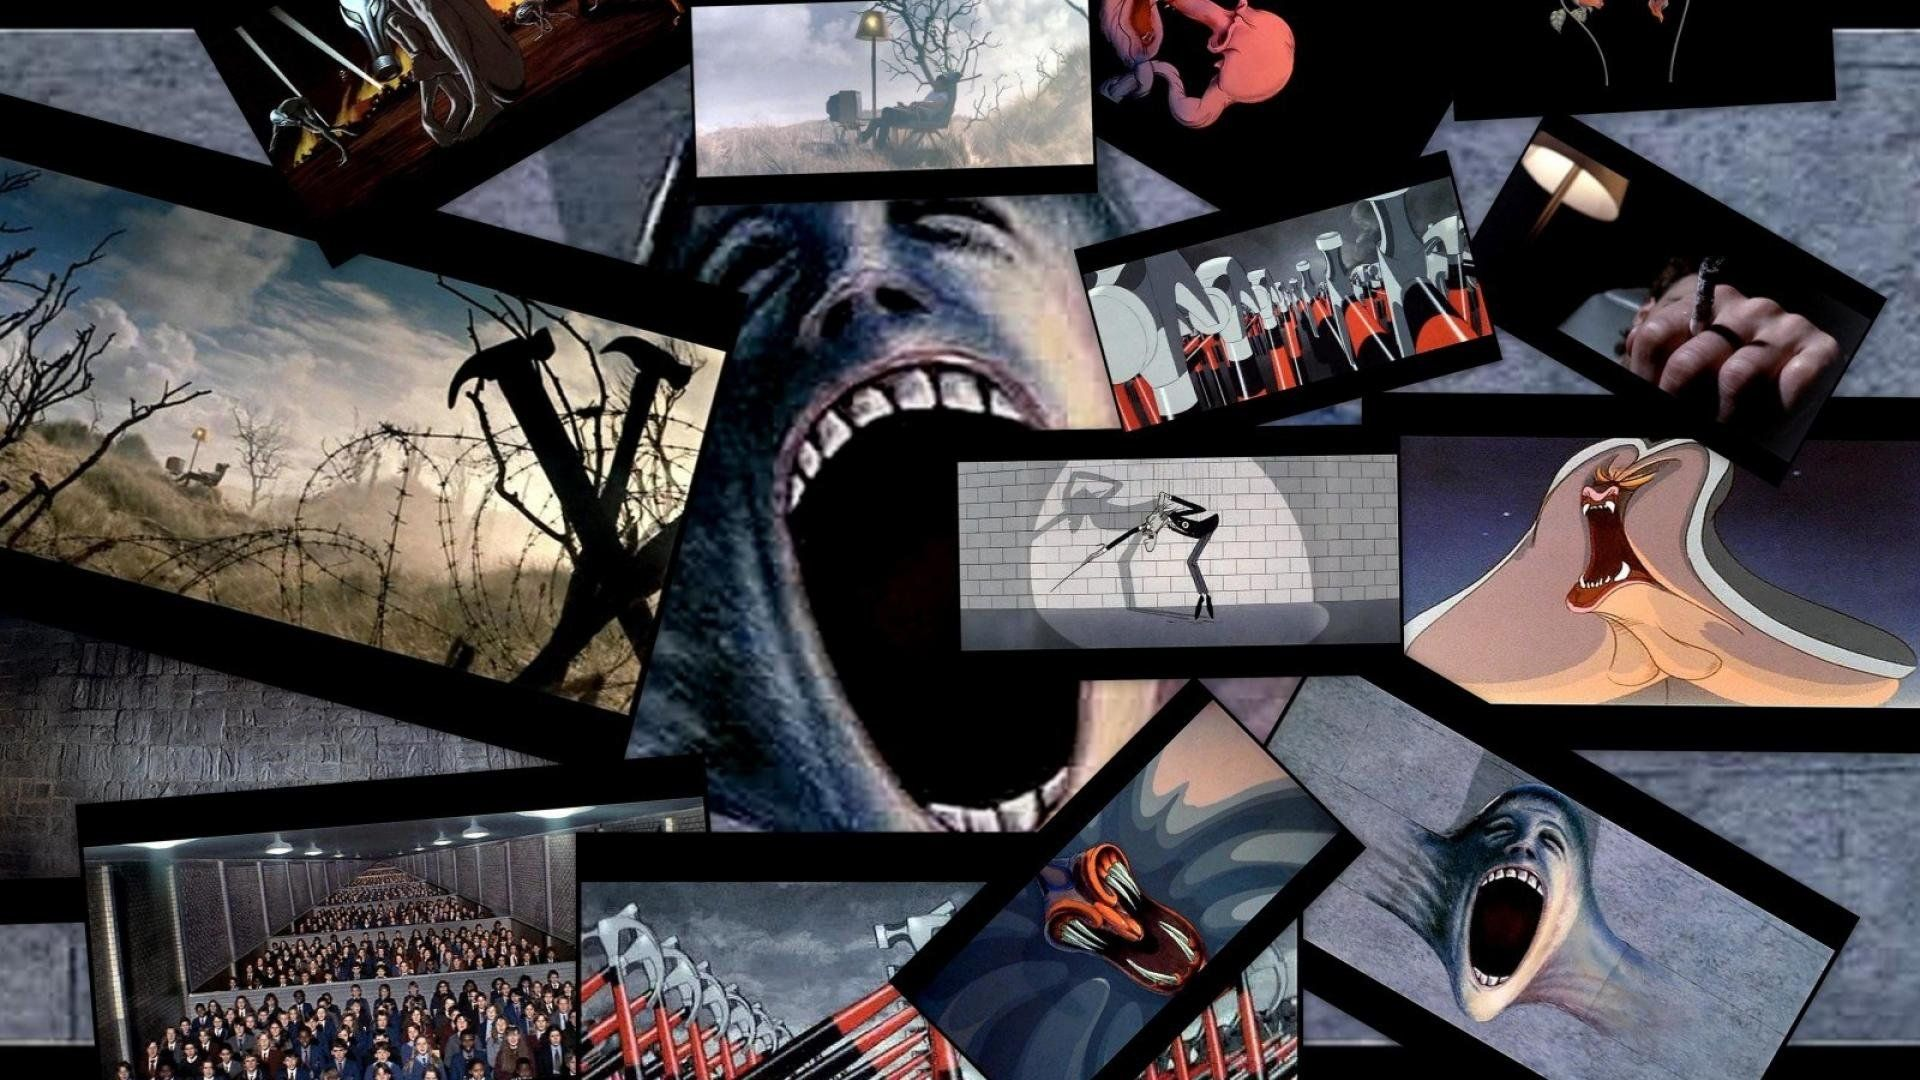 Pink Floyd 1080p Wallpaper Picture Image 1920x1080